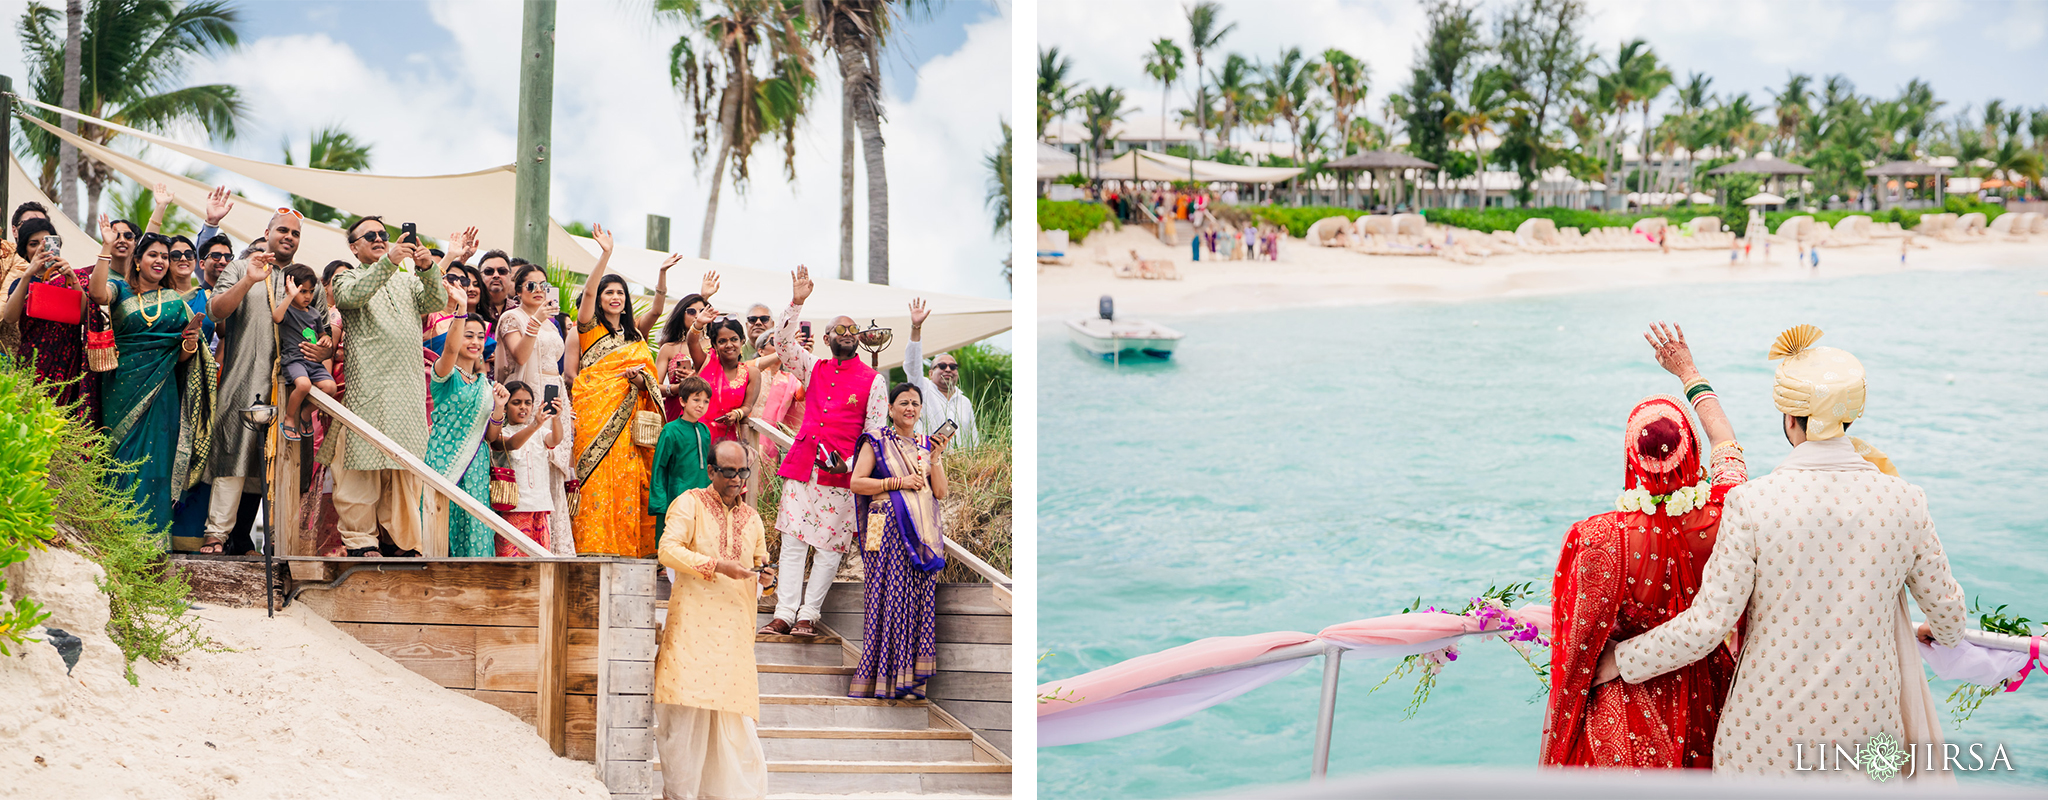 27 Beaches Resort Turks and Caicos Indian Wedding Photography